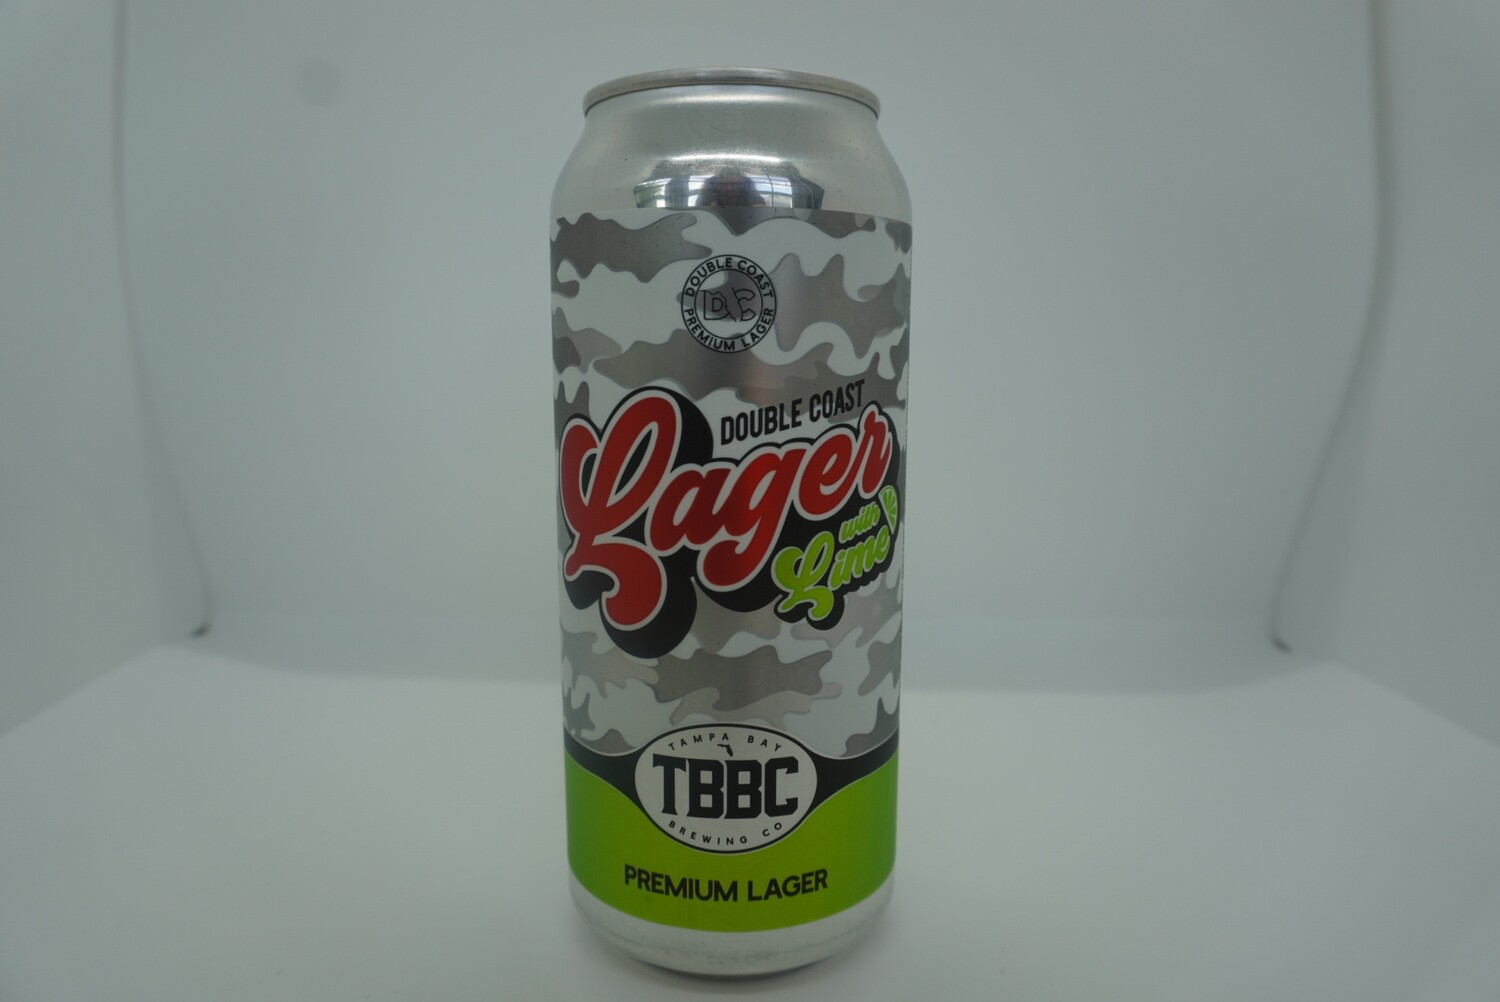 TBBC - Double Coast Lager w/Lime - 4.1% ABV - 16oz Can